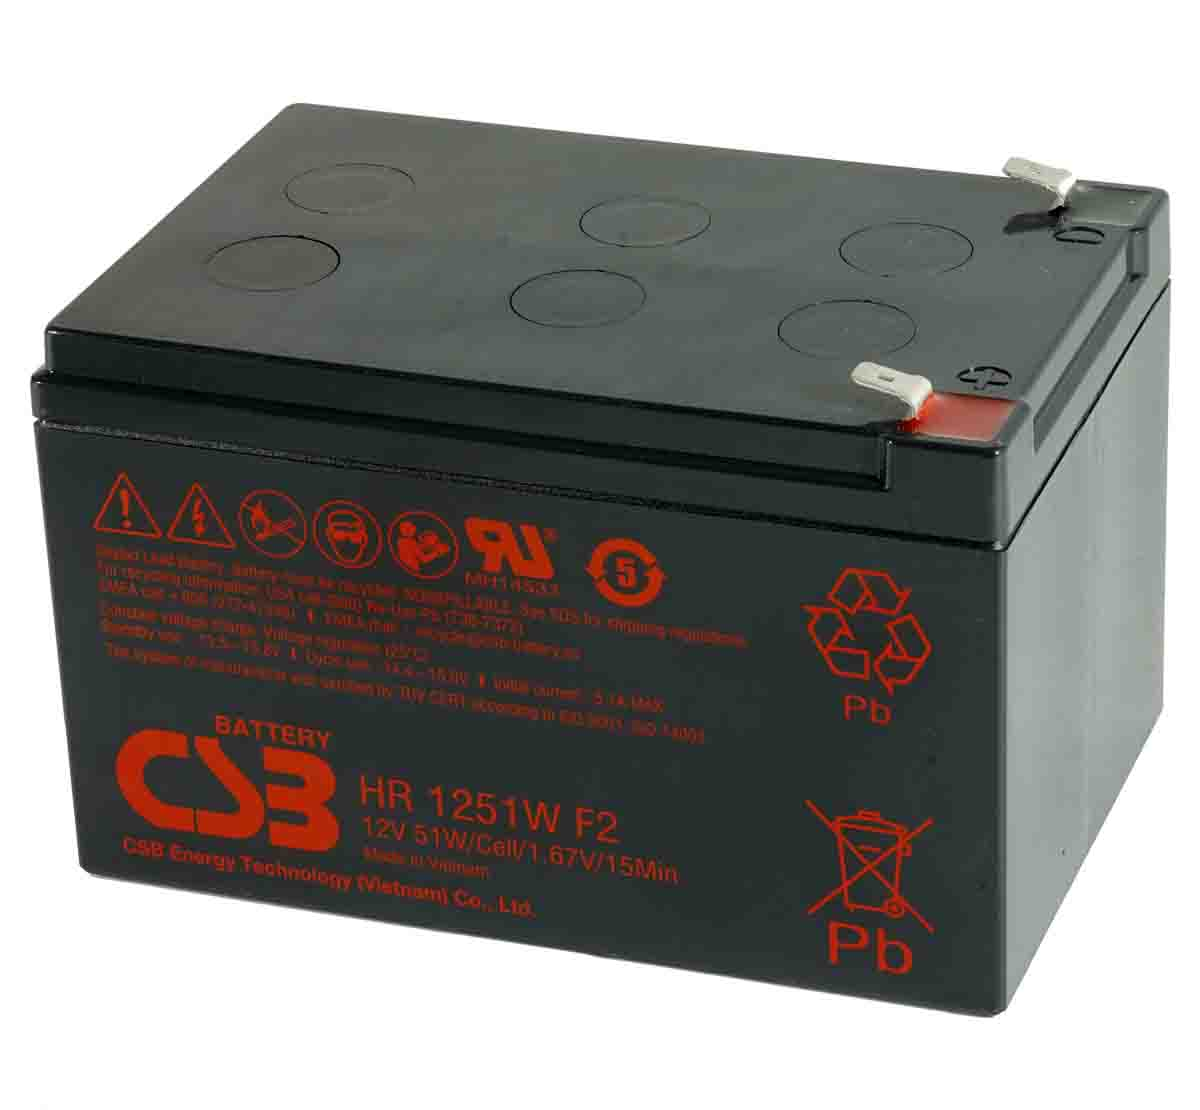 CSB HR1251W 12V 51W Sealed Lead Acid Battery